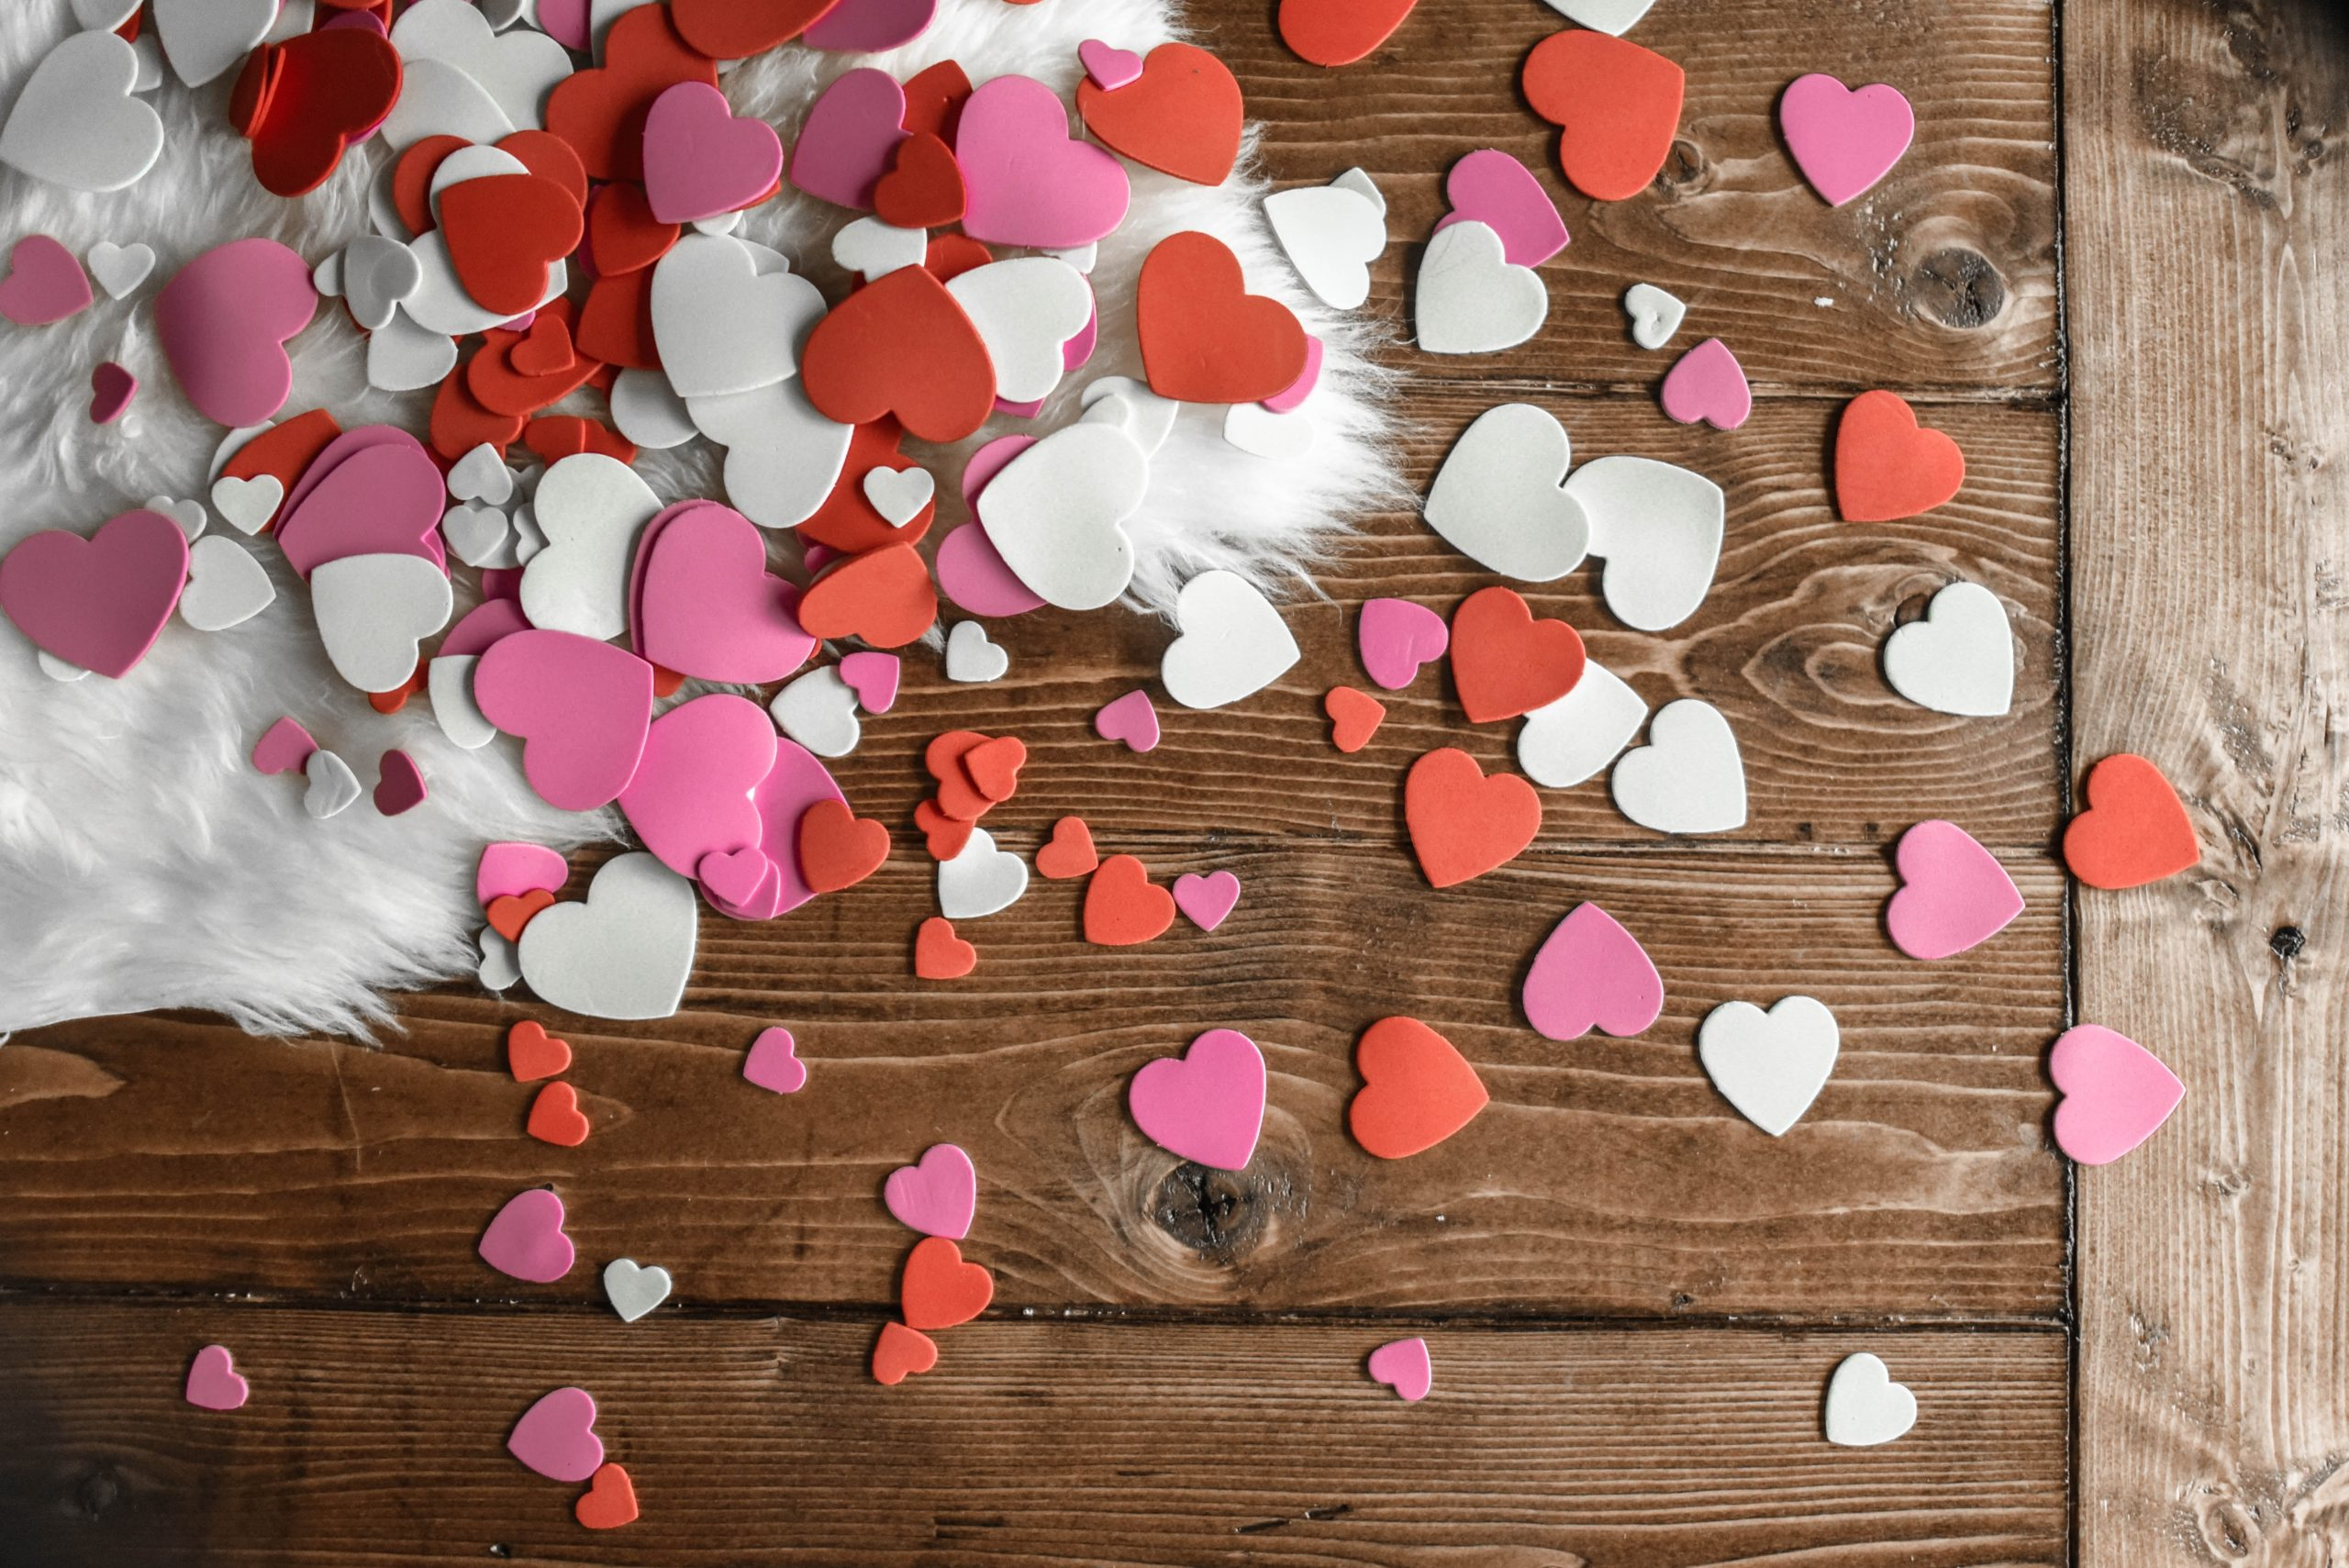 The Good, The True, The Beautiful, and The Real: Reflections on Valentine's Day